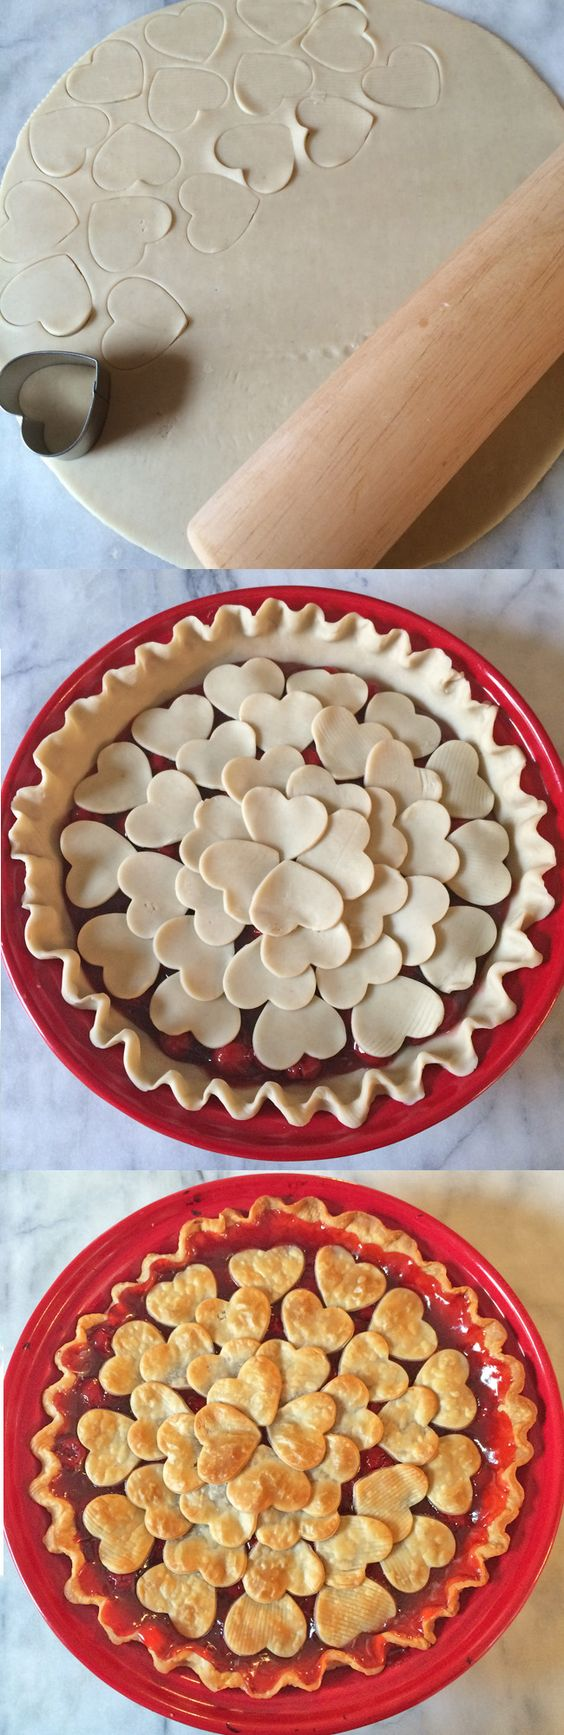 Valentine Cherry Pie. The perfect dessert to make for your Valentine!: